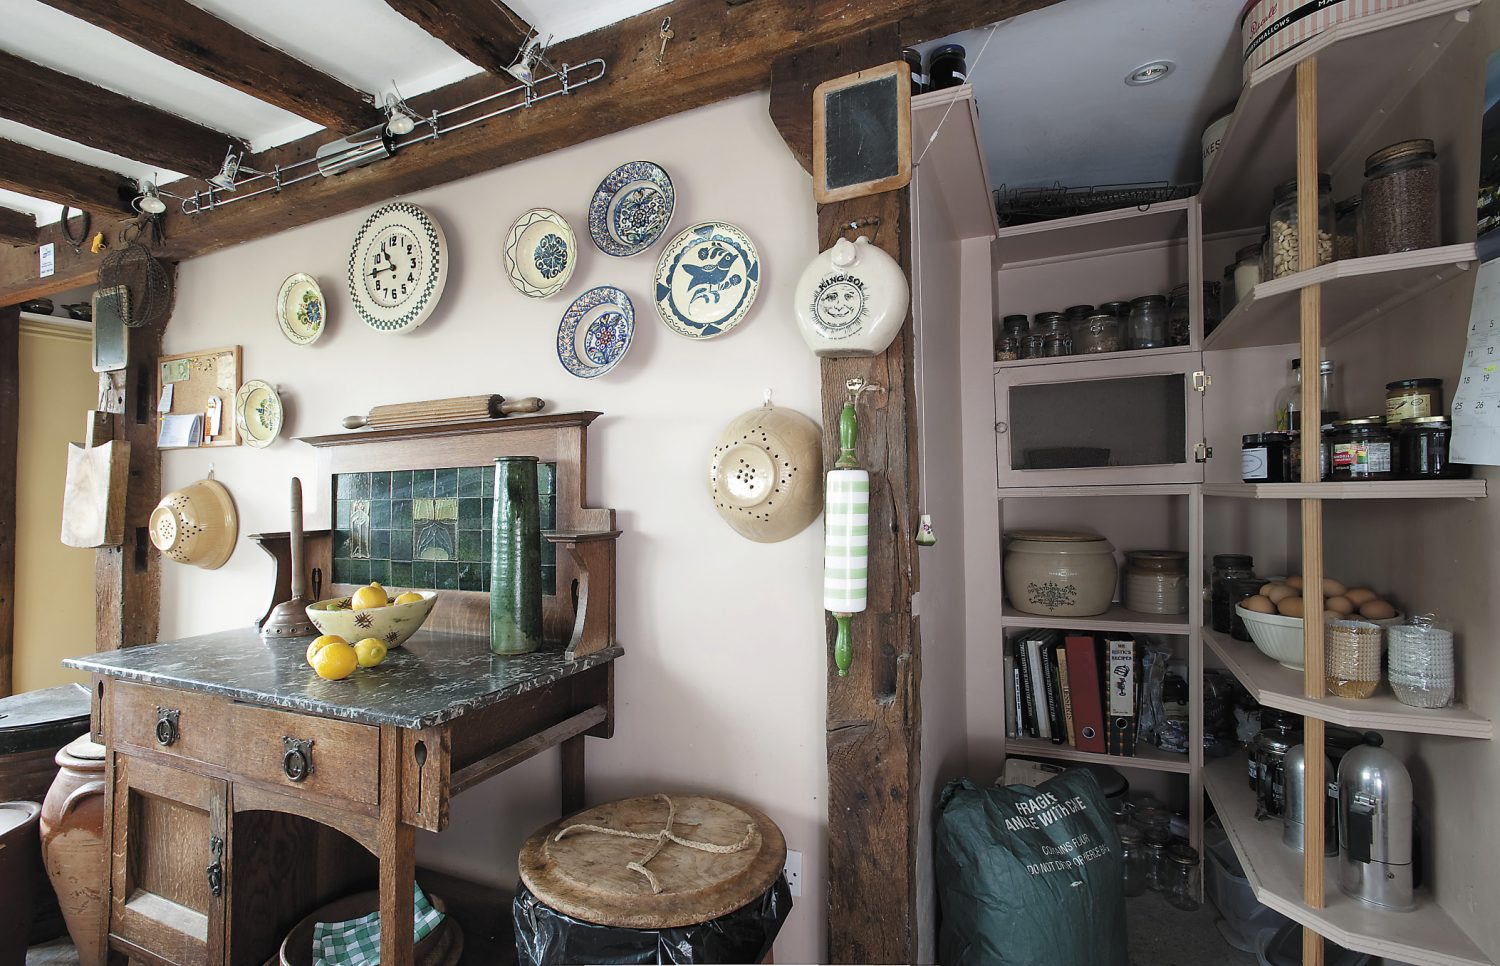 Michael moved into the house at 12 noon one August day and within the first half hour removed the breakfast bar, replacing it with an old washstand; the pantry was created out of what is thought to be the site of an old staircase